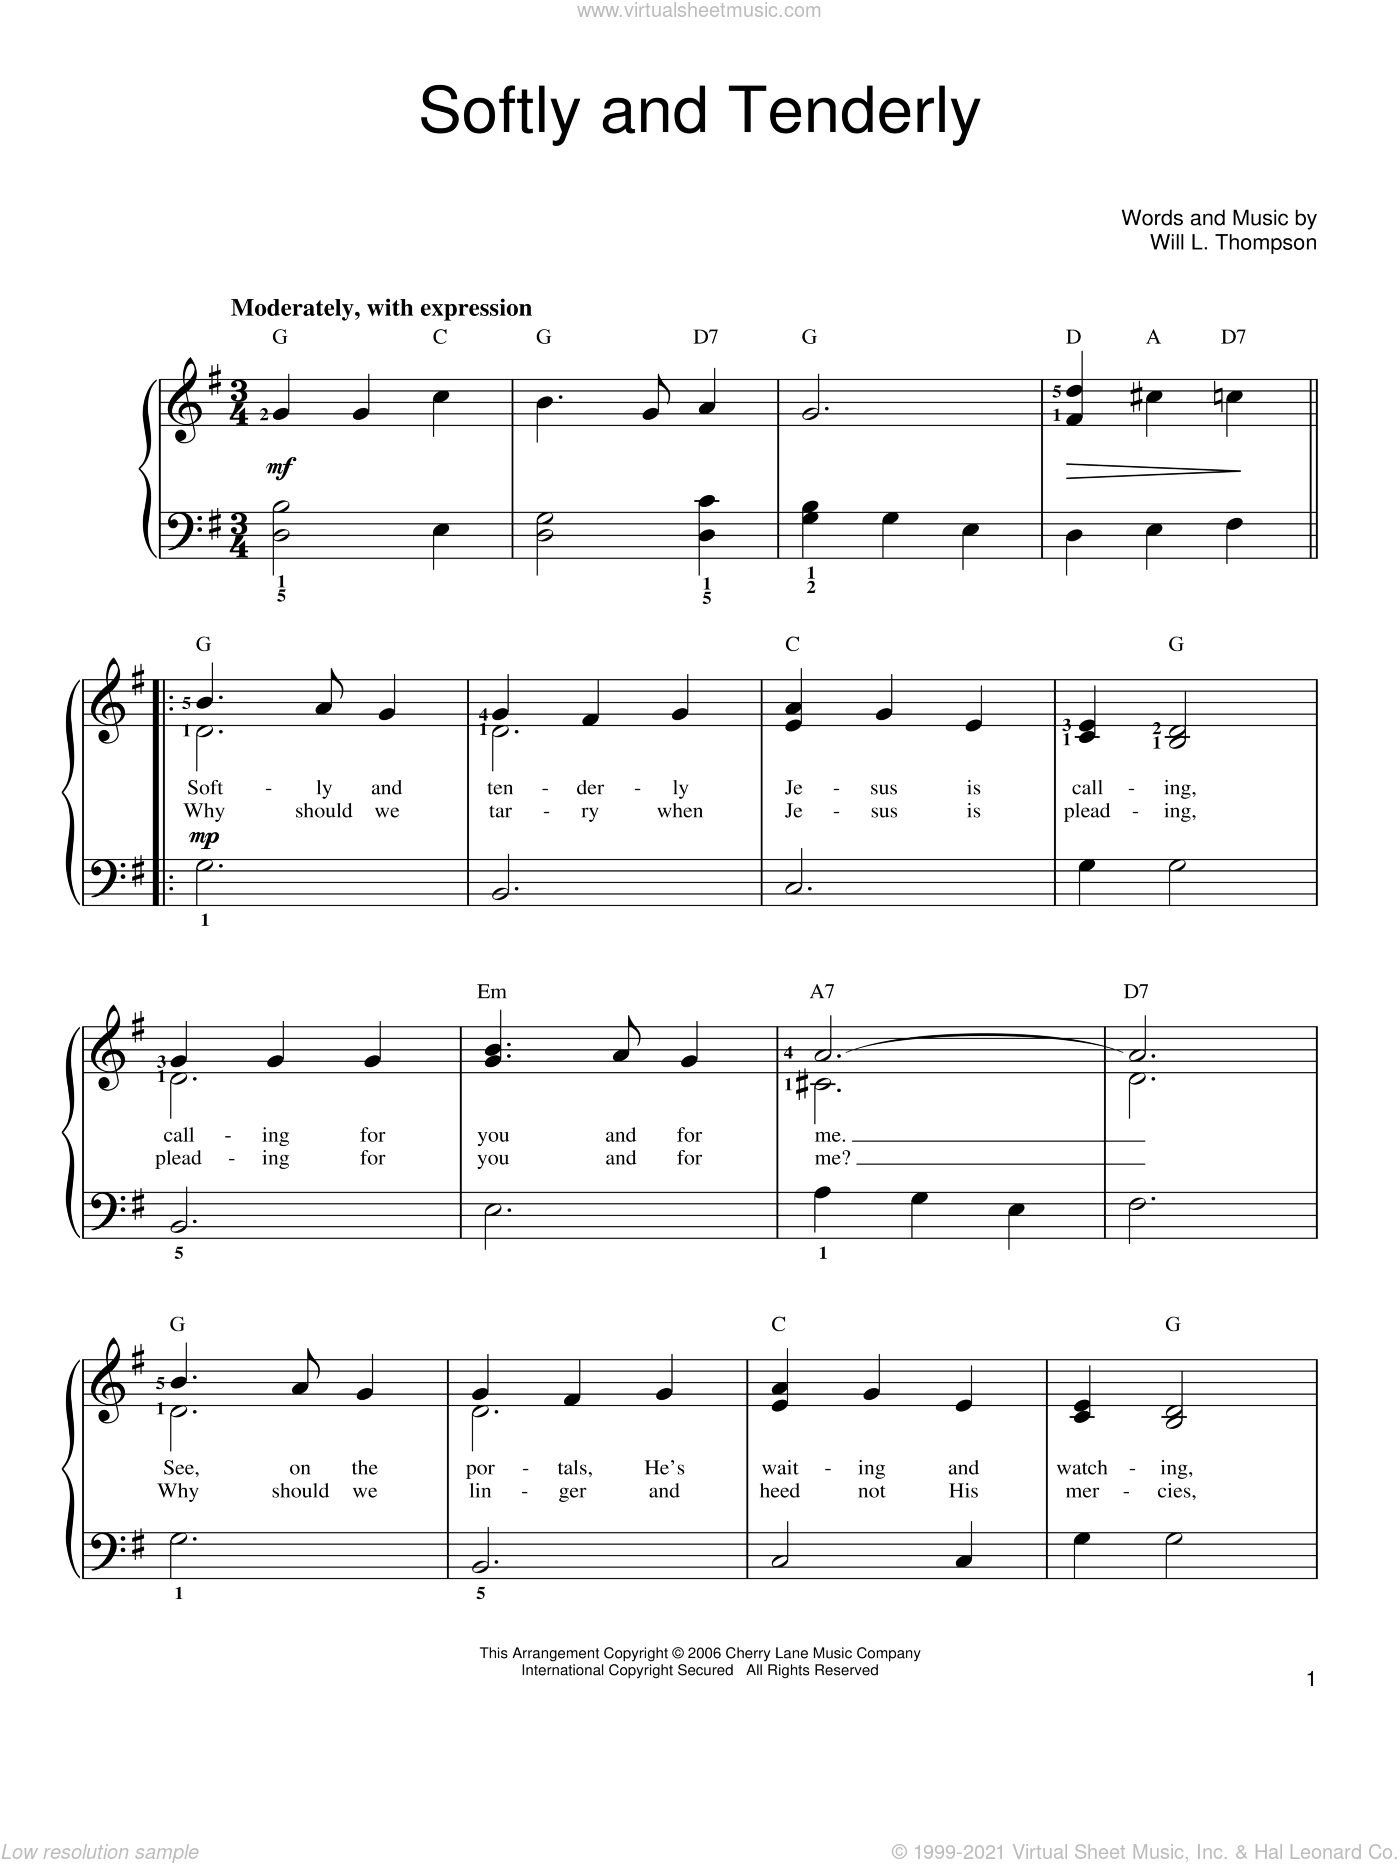 Softly And Tenderly, (easy) sheet music for piano solo by Will L. Thompson, easy skill level